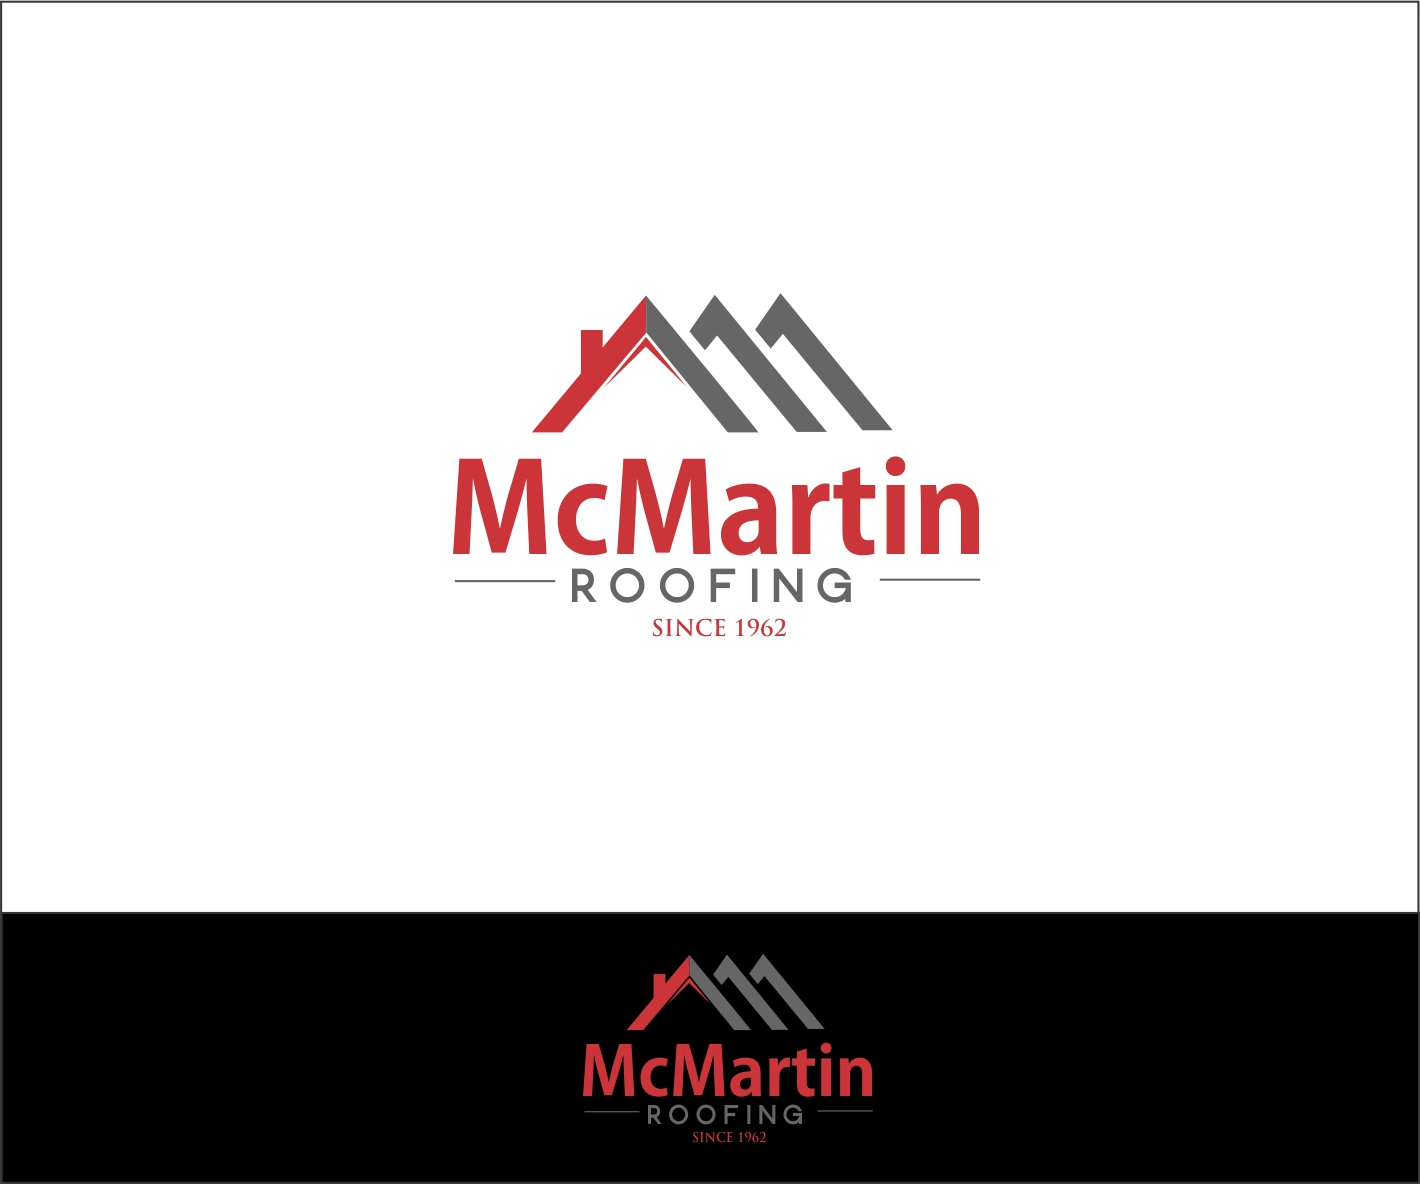 roofing logo design for mcmartin roofing since 1962 by a n roofing company logos in north dfw roofing company logo images